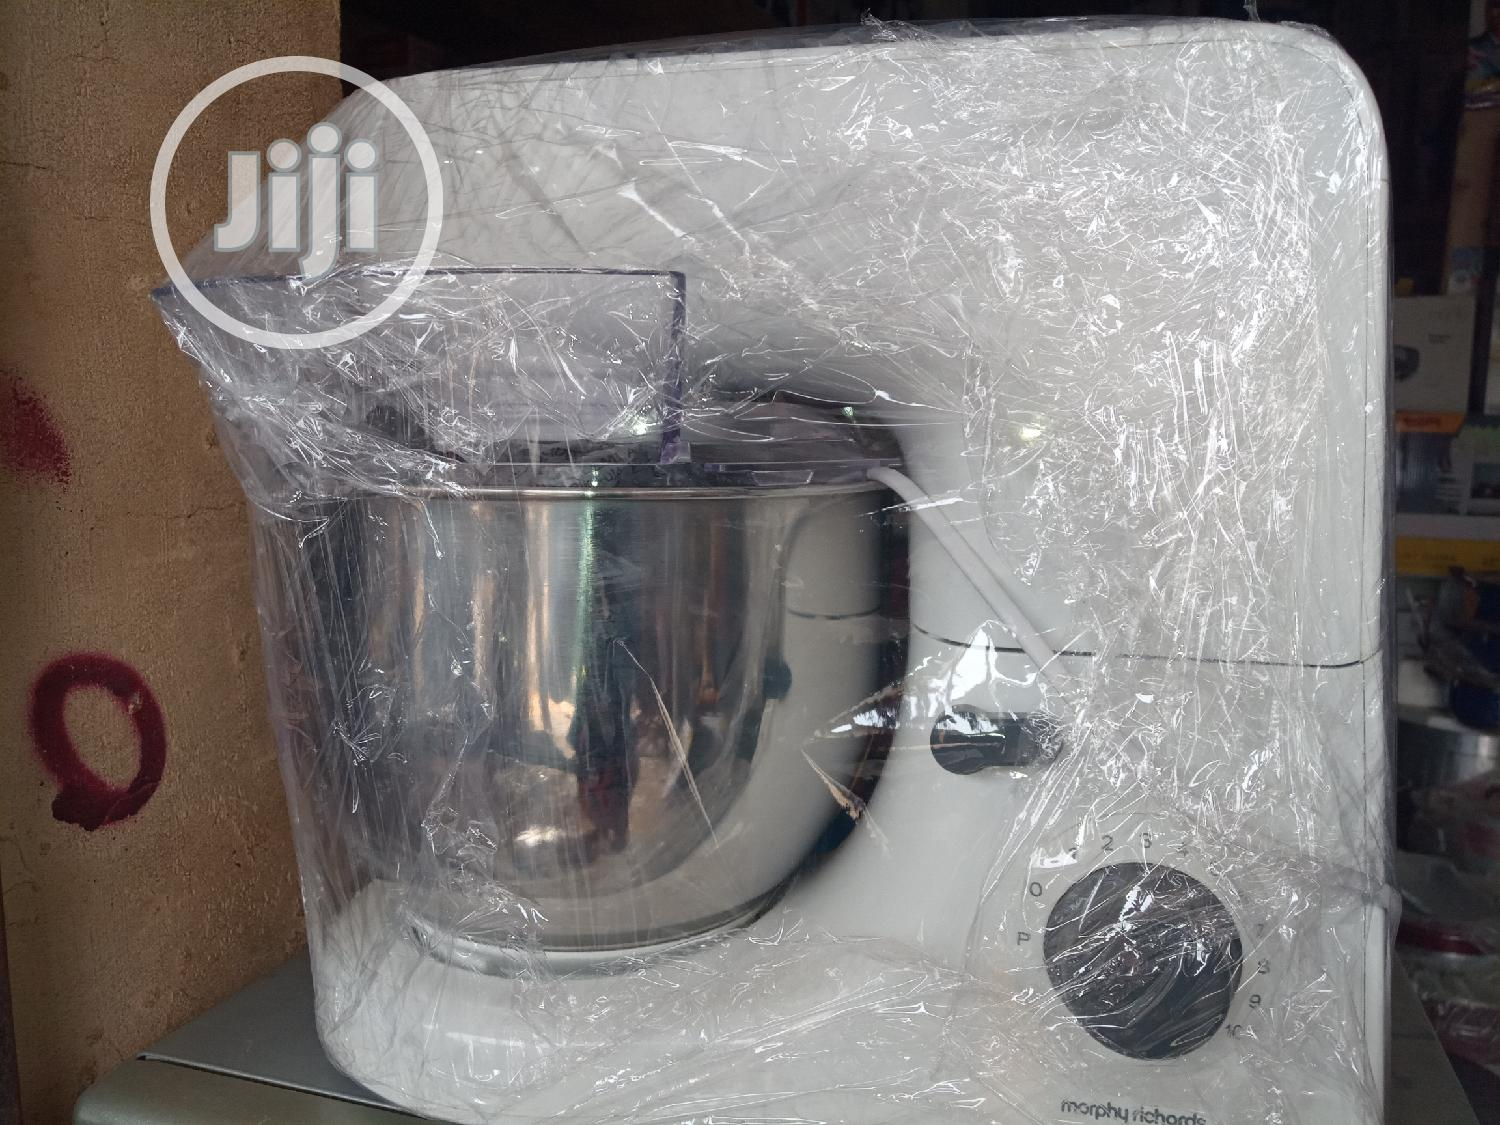 Original Morphy Richard Stand Mixer 5 Litre Bowl.